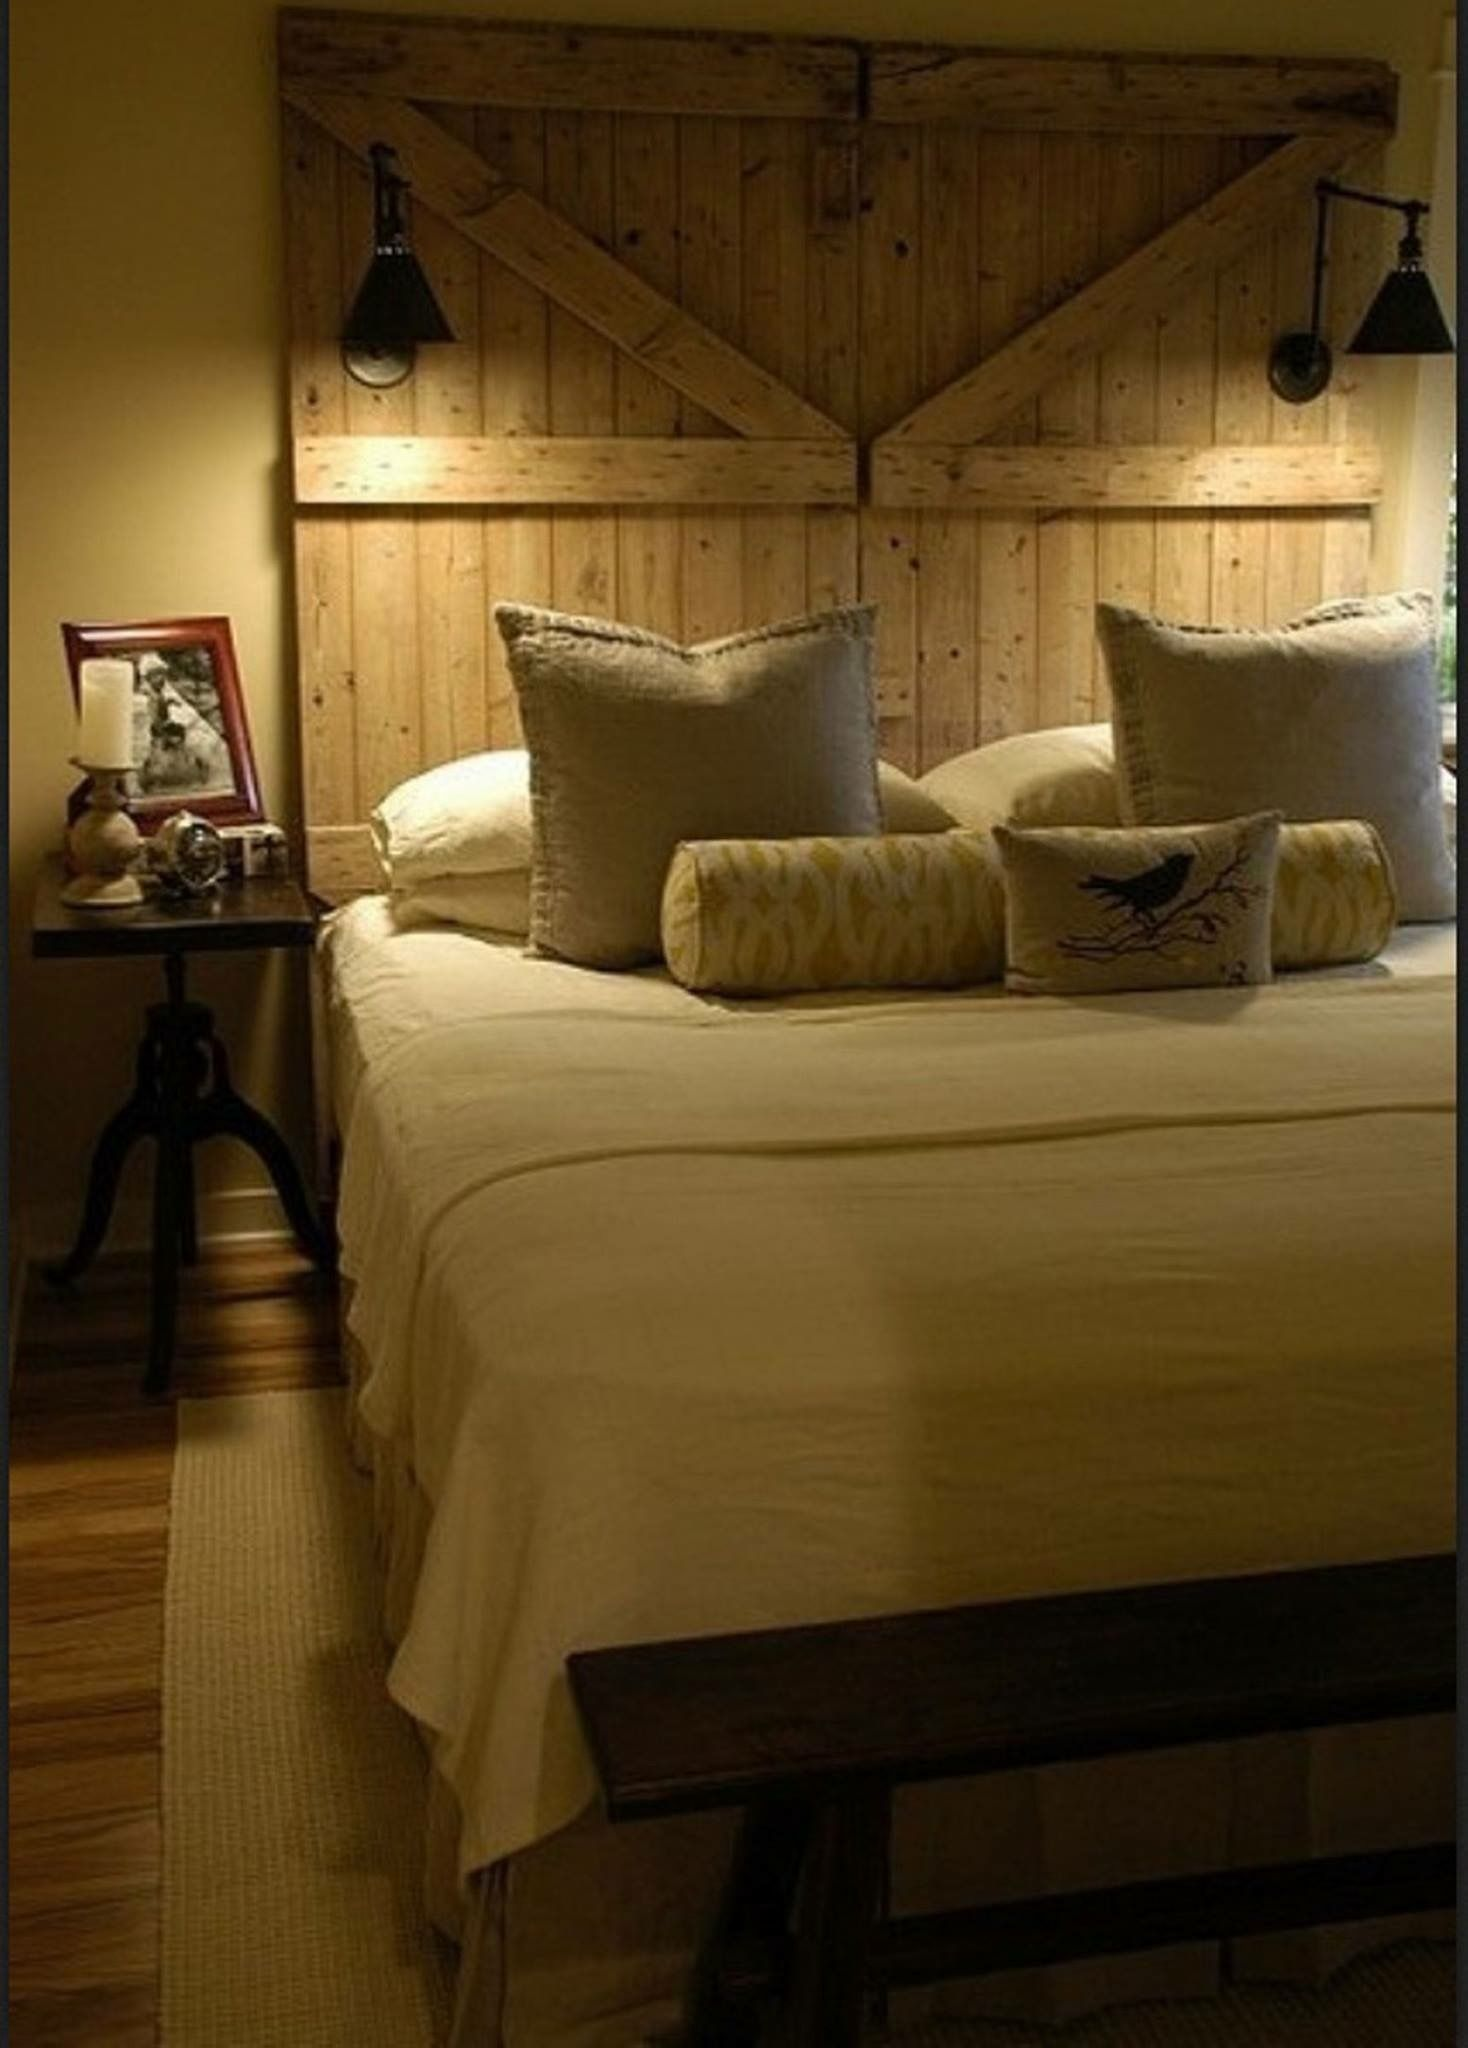 Barn door headboard with attached lights so cool bedrooms